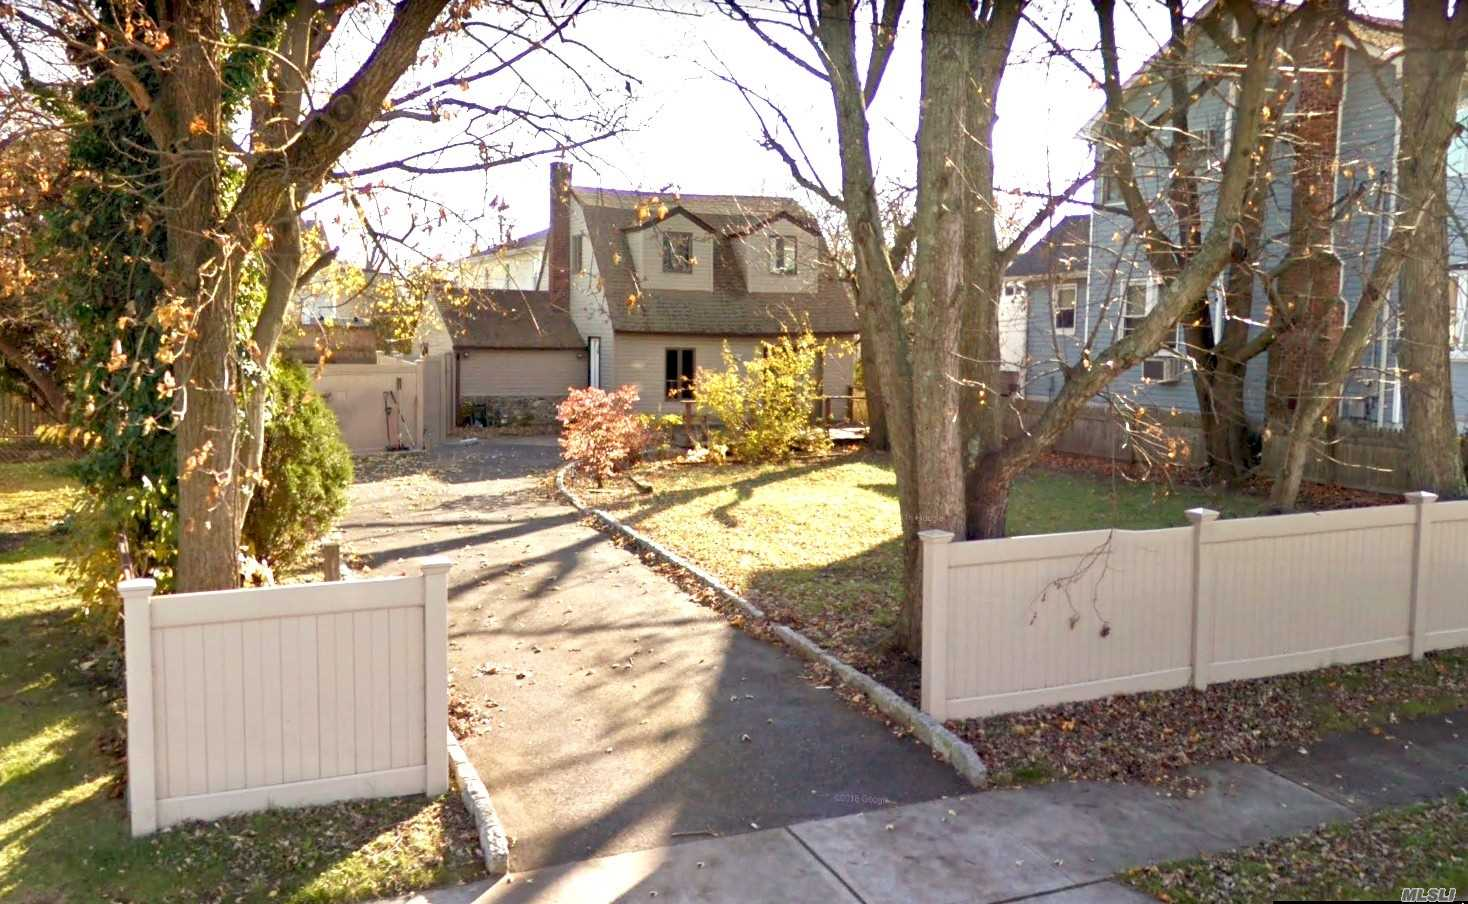 Exquisite Home In Heart Of Baldwin Harbor. Completely Renovated With Hardwood Floors Throughout, Updated Heating & Furnace, New Electric & Plumbing. Spacious Eat In Kitchen, Formal Dining Room, Beautiful Living Room That Leads Out To Large Private Deck, Manicured Landscaped Front Yard,  1 Car Attached Garage, Low Taxes, Walking Distance To Schools, House Of Worship & Public Transportation. Price To Sell Fast! Don't Miss Out On This Charming Home!